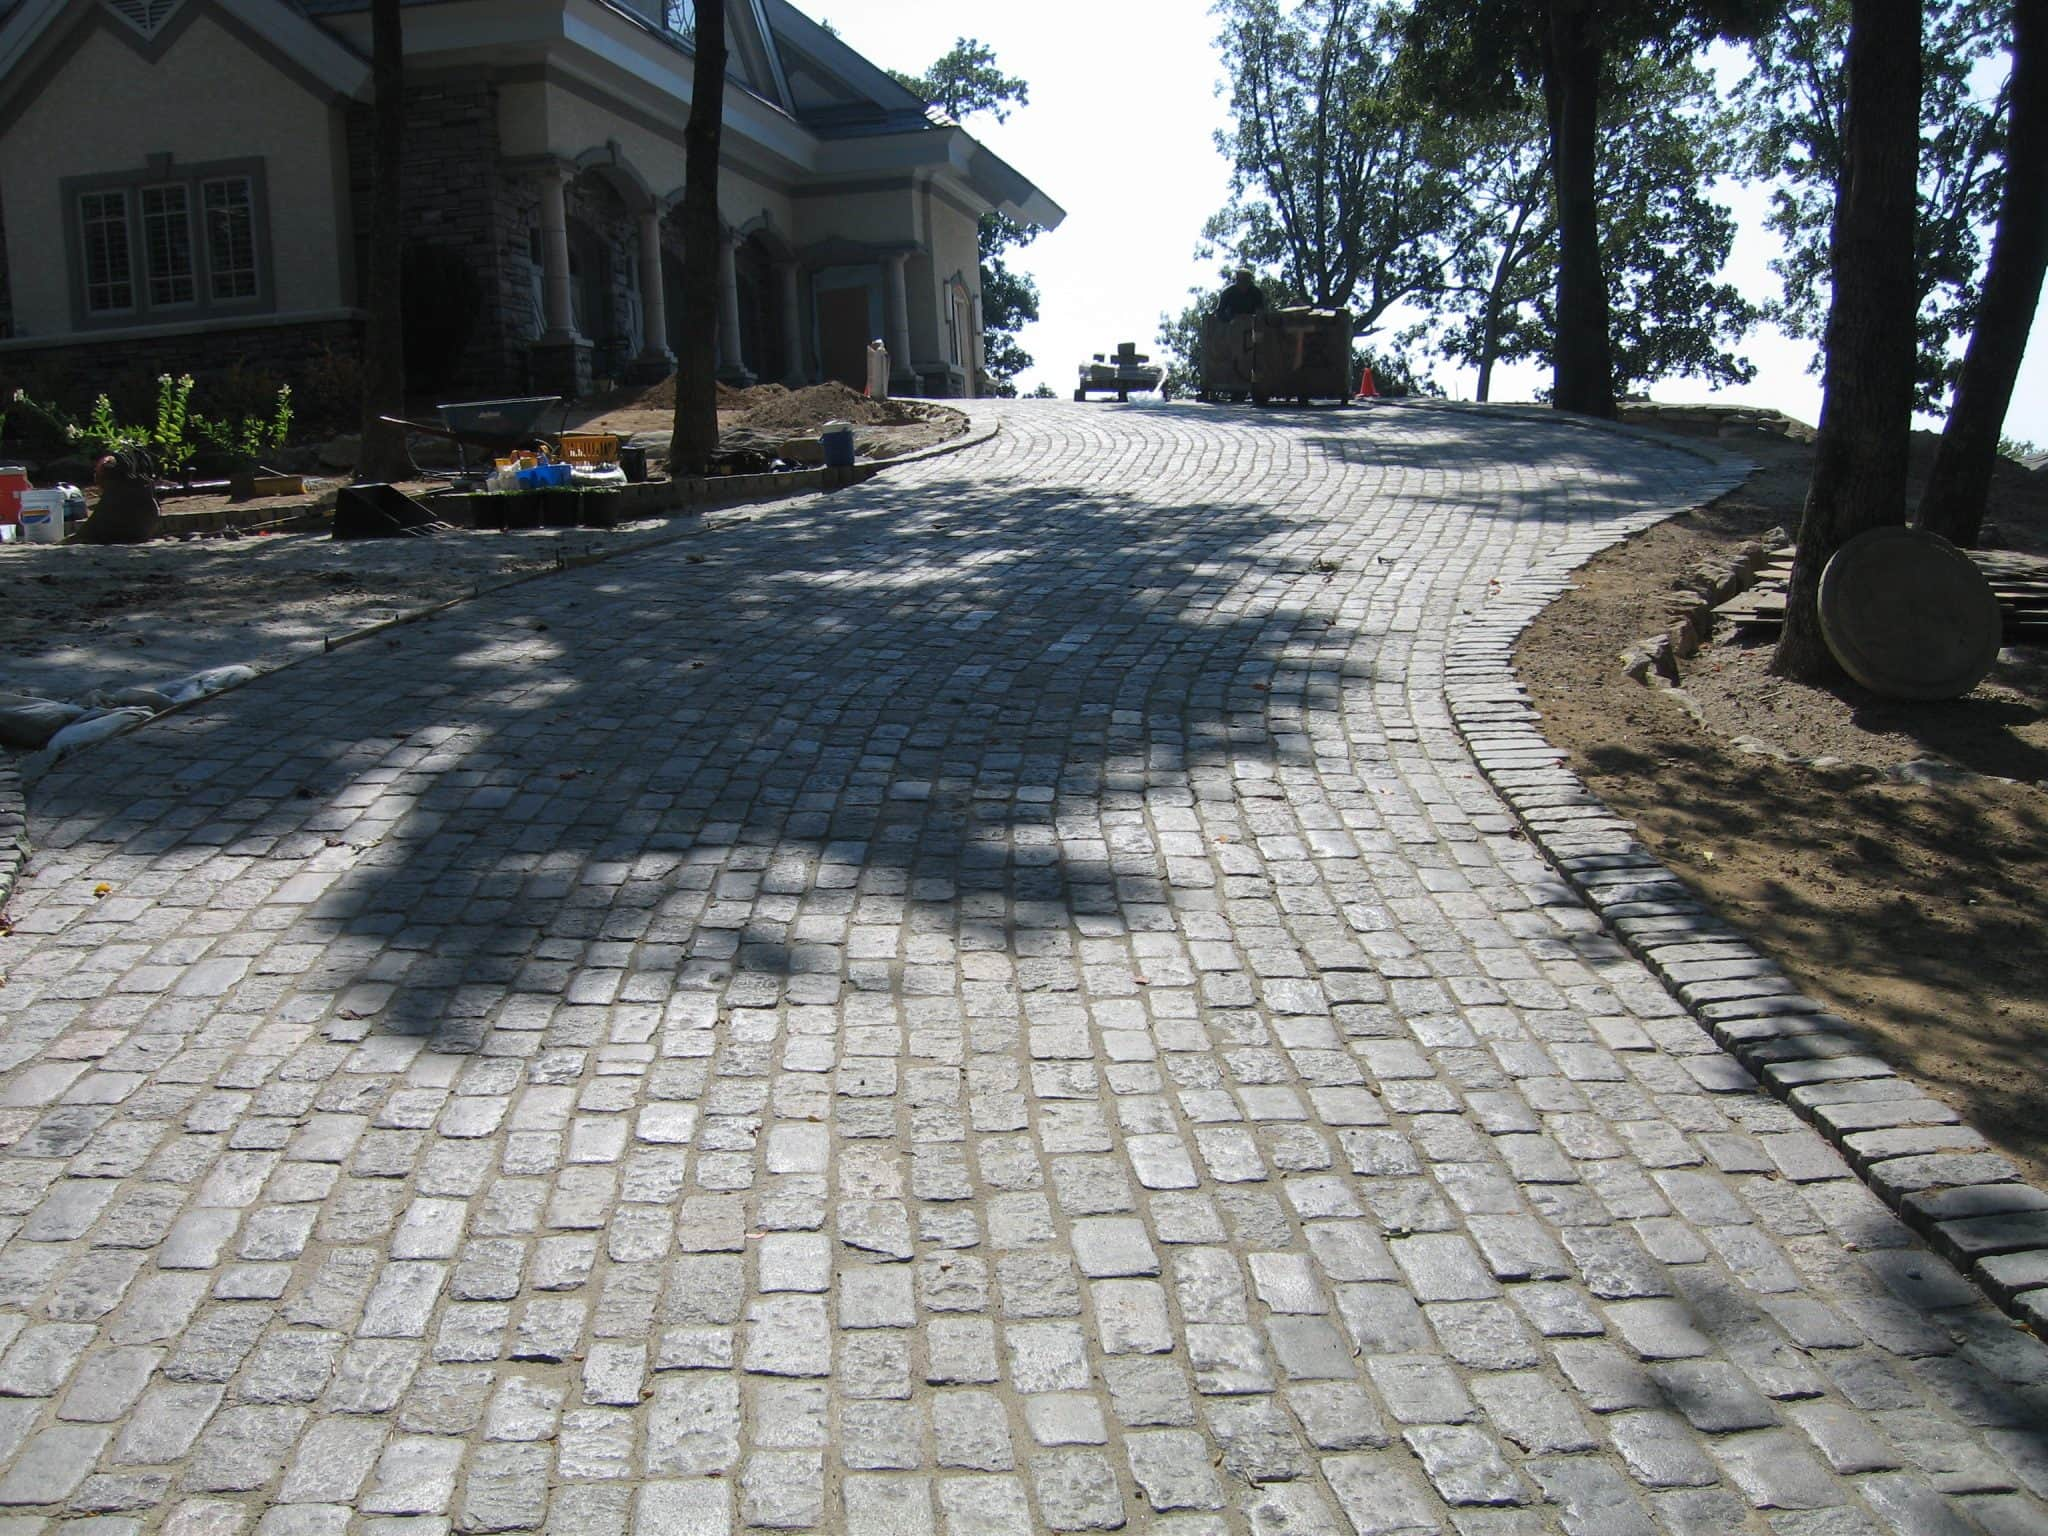 You can see a driveway, paved with Lake Street Cobblestone, leading to a house with a few streets and a roundabout at the top.